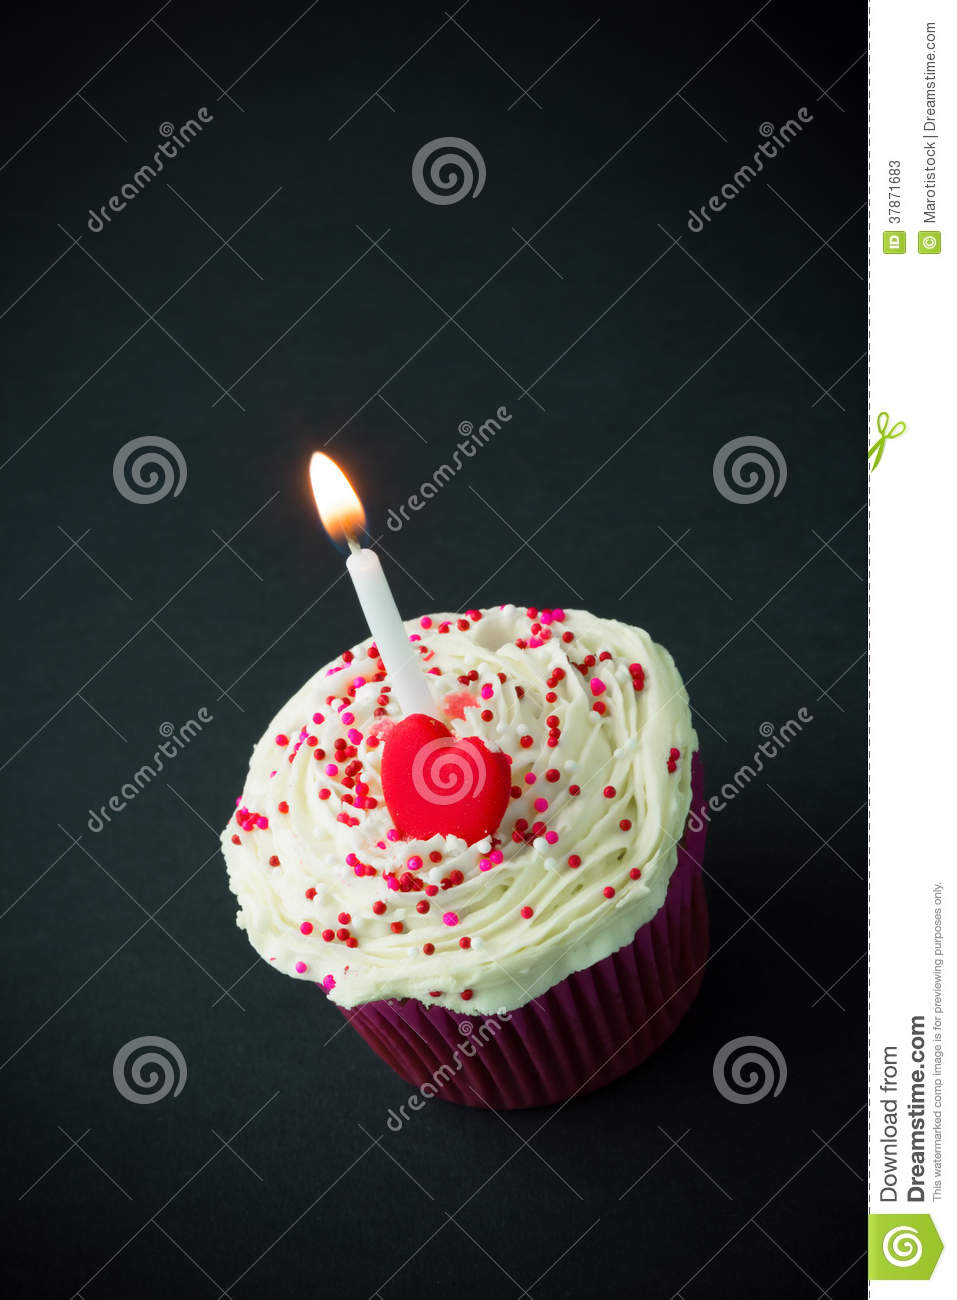 Sweet Little Birthday Cake With Candles Stock Photos - Image: 37871683